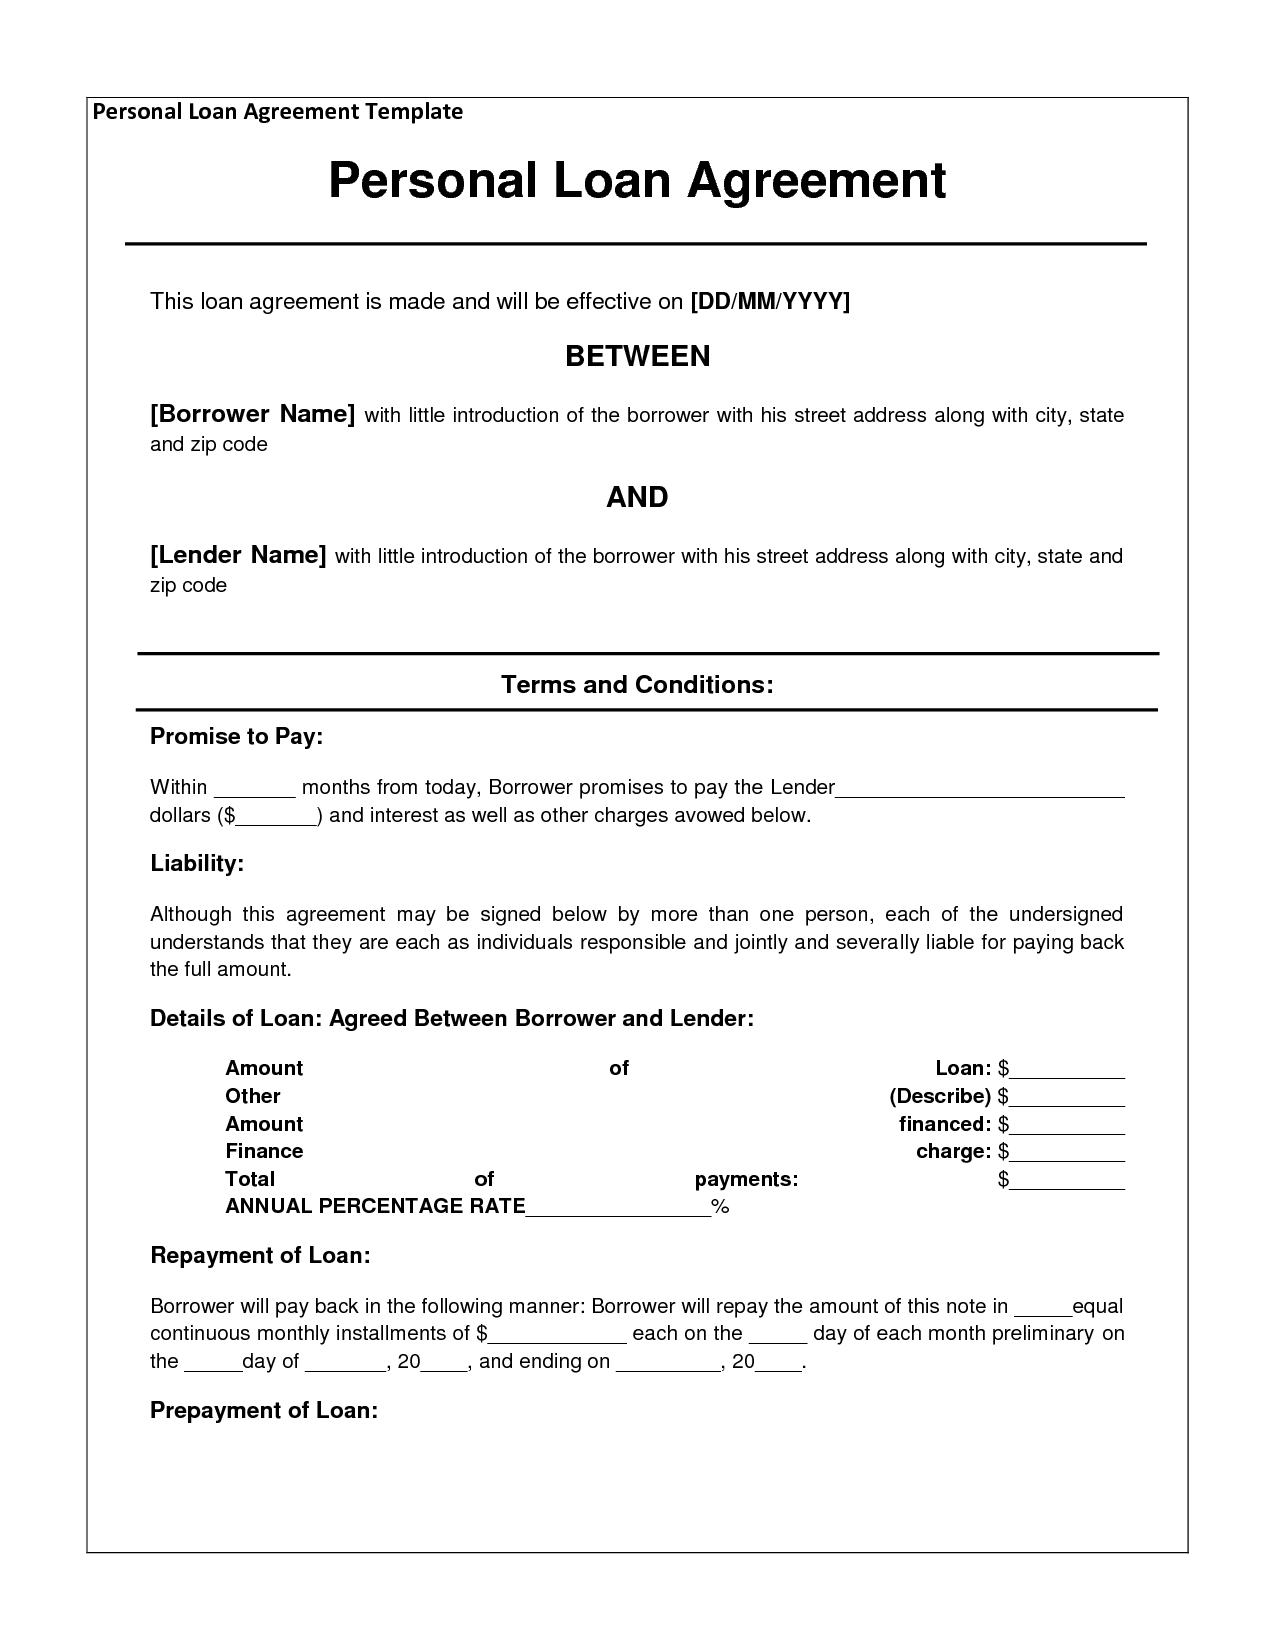 Free personal loan agreement form template $1000 Approved in 2